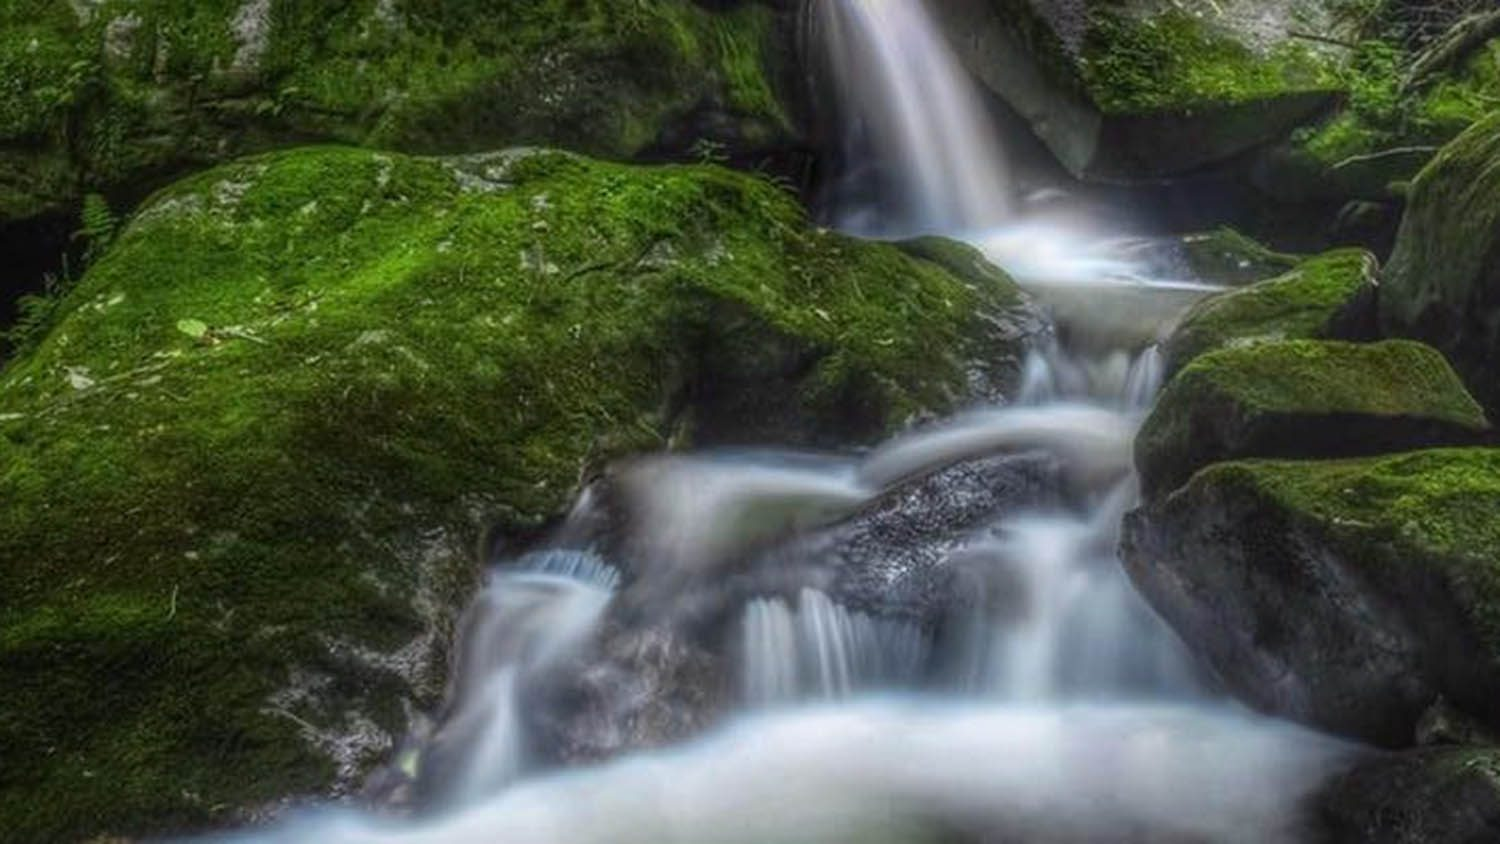 Photo of waterfall flowing over moss-covered rocks